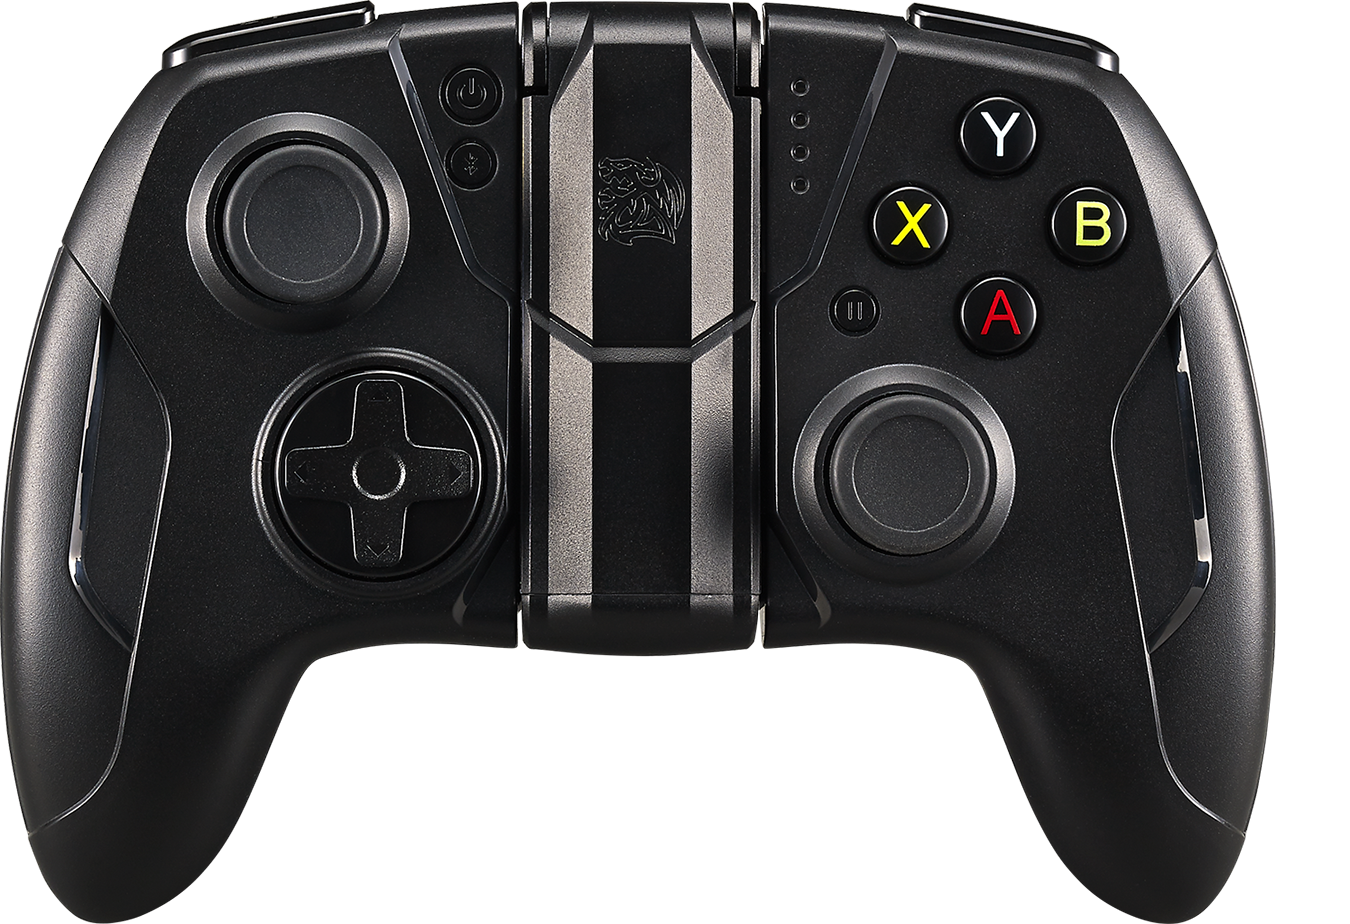 Tt Esports Thermaltake Contour Mobile Gaming Black Apple Mfi Joystick Double Game Pad Transparant Wellcome Watch And Feel The Experience